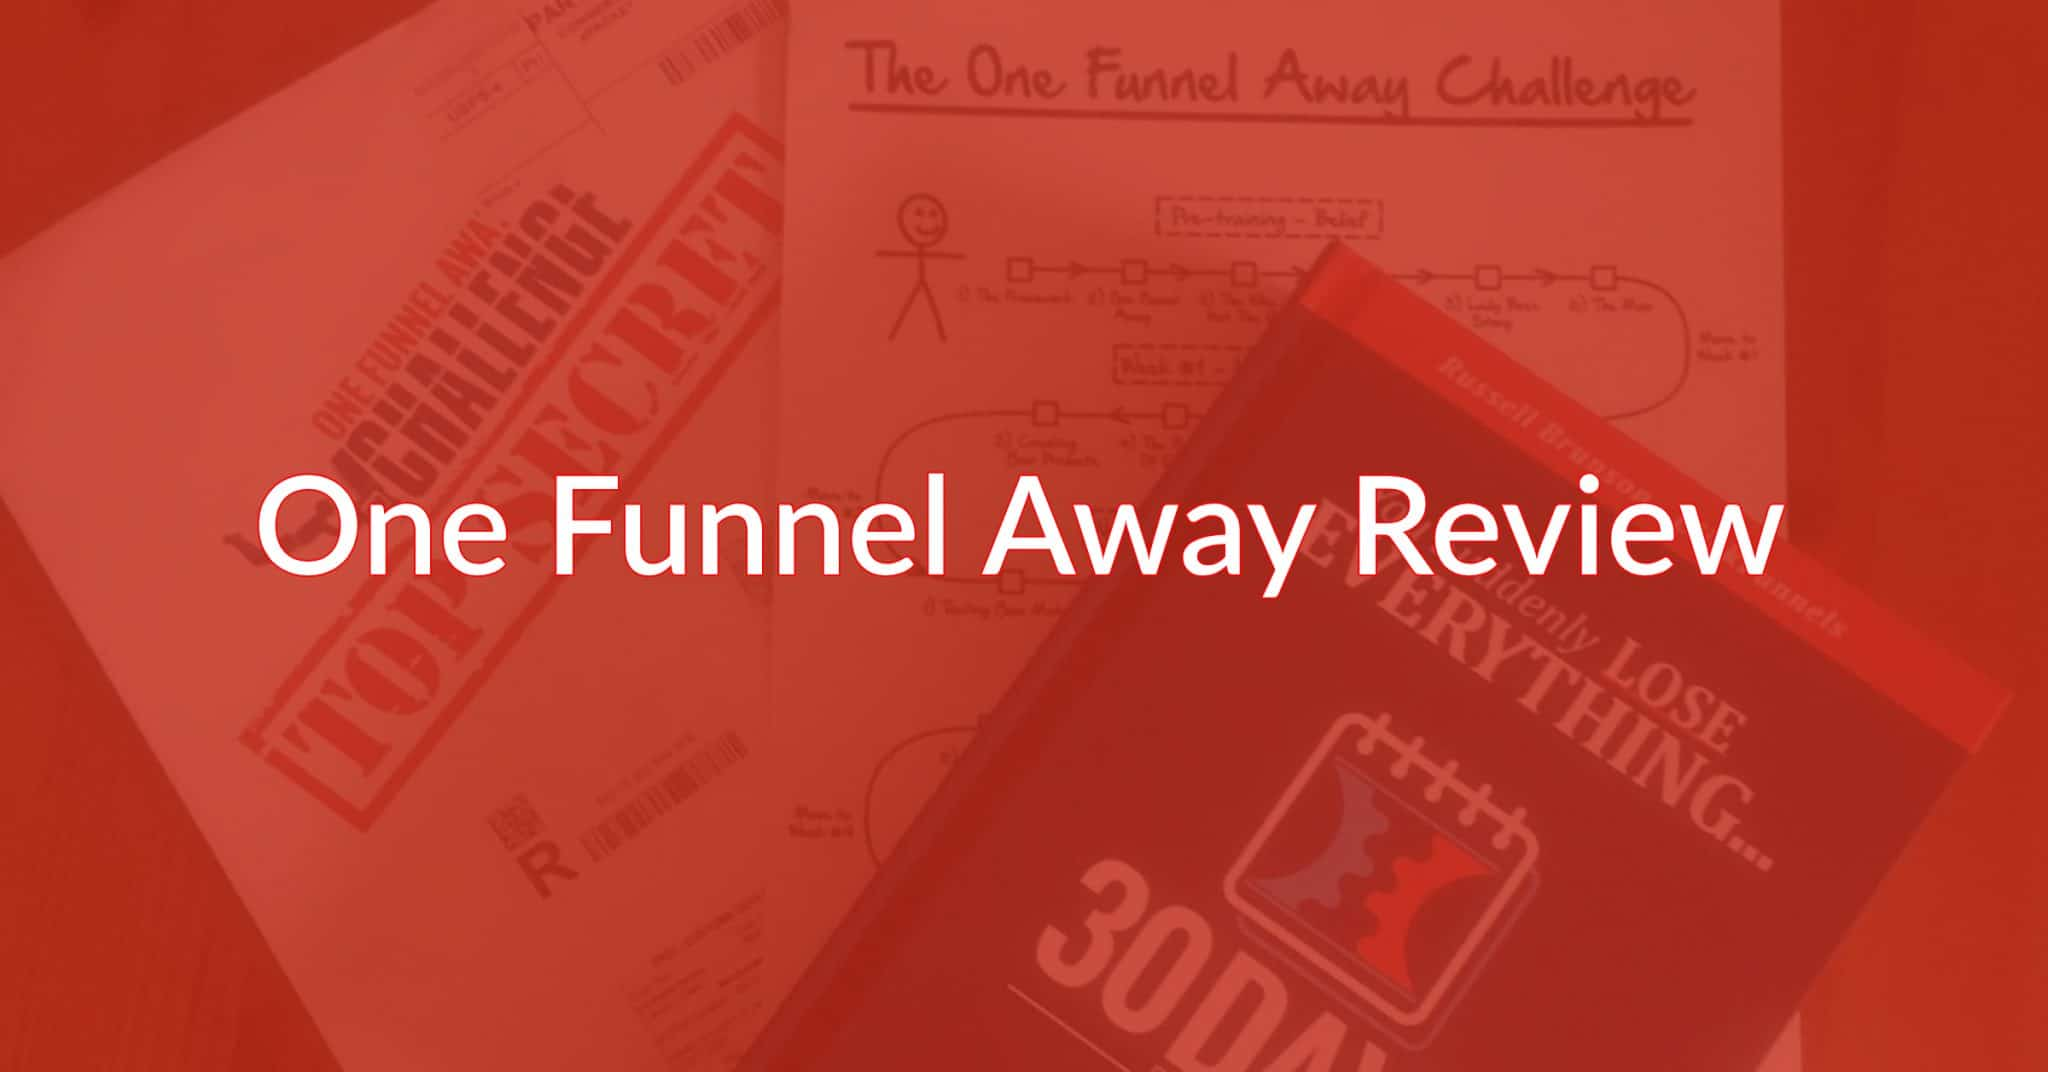 One Funnel Away Challenge Review: Honest & Unbiased Opinion